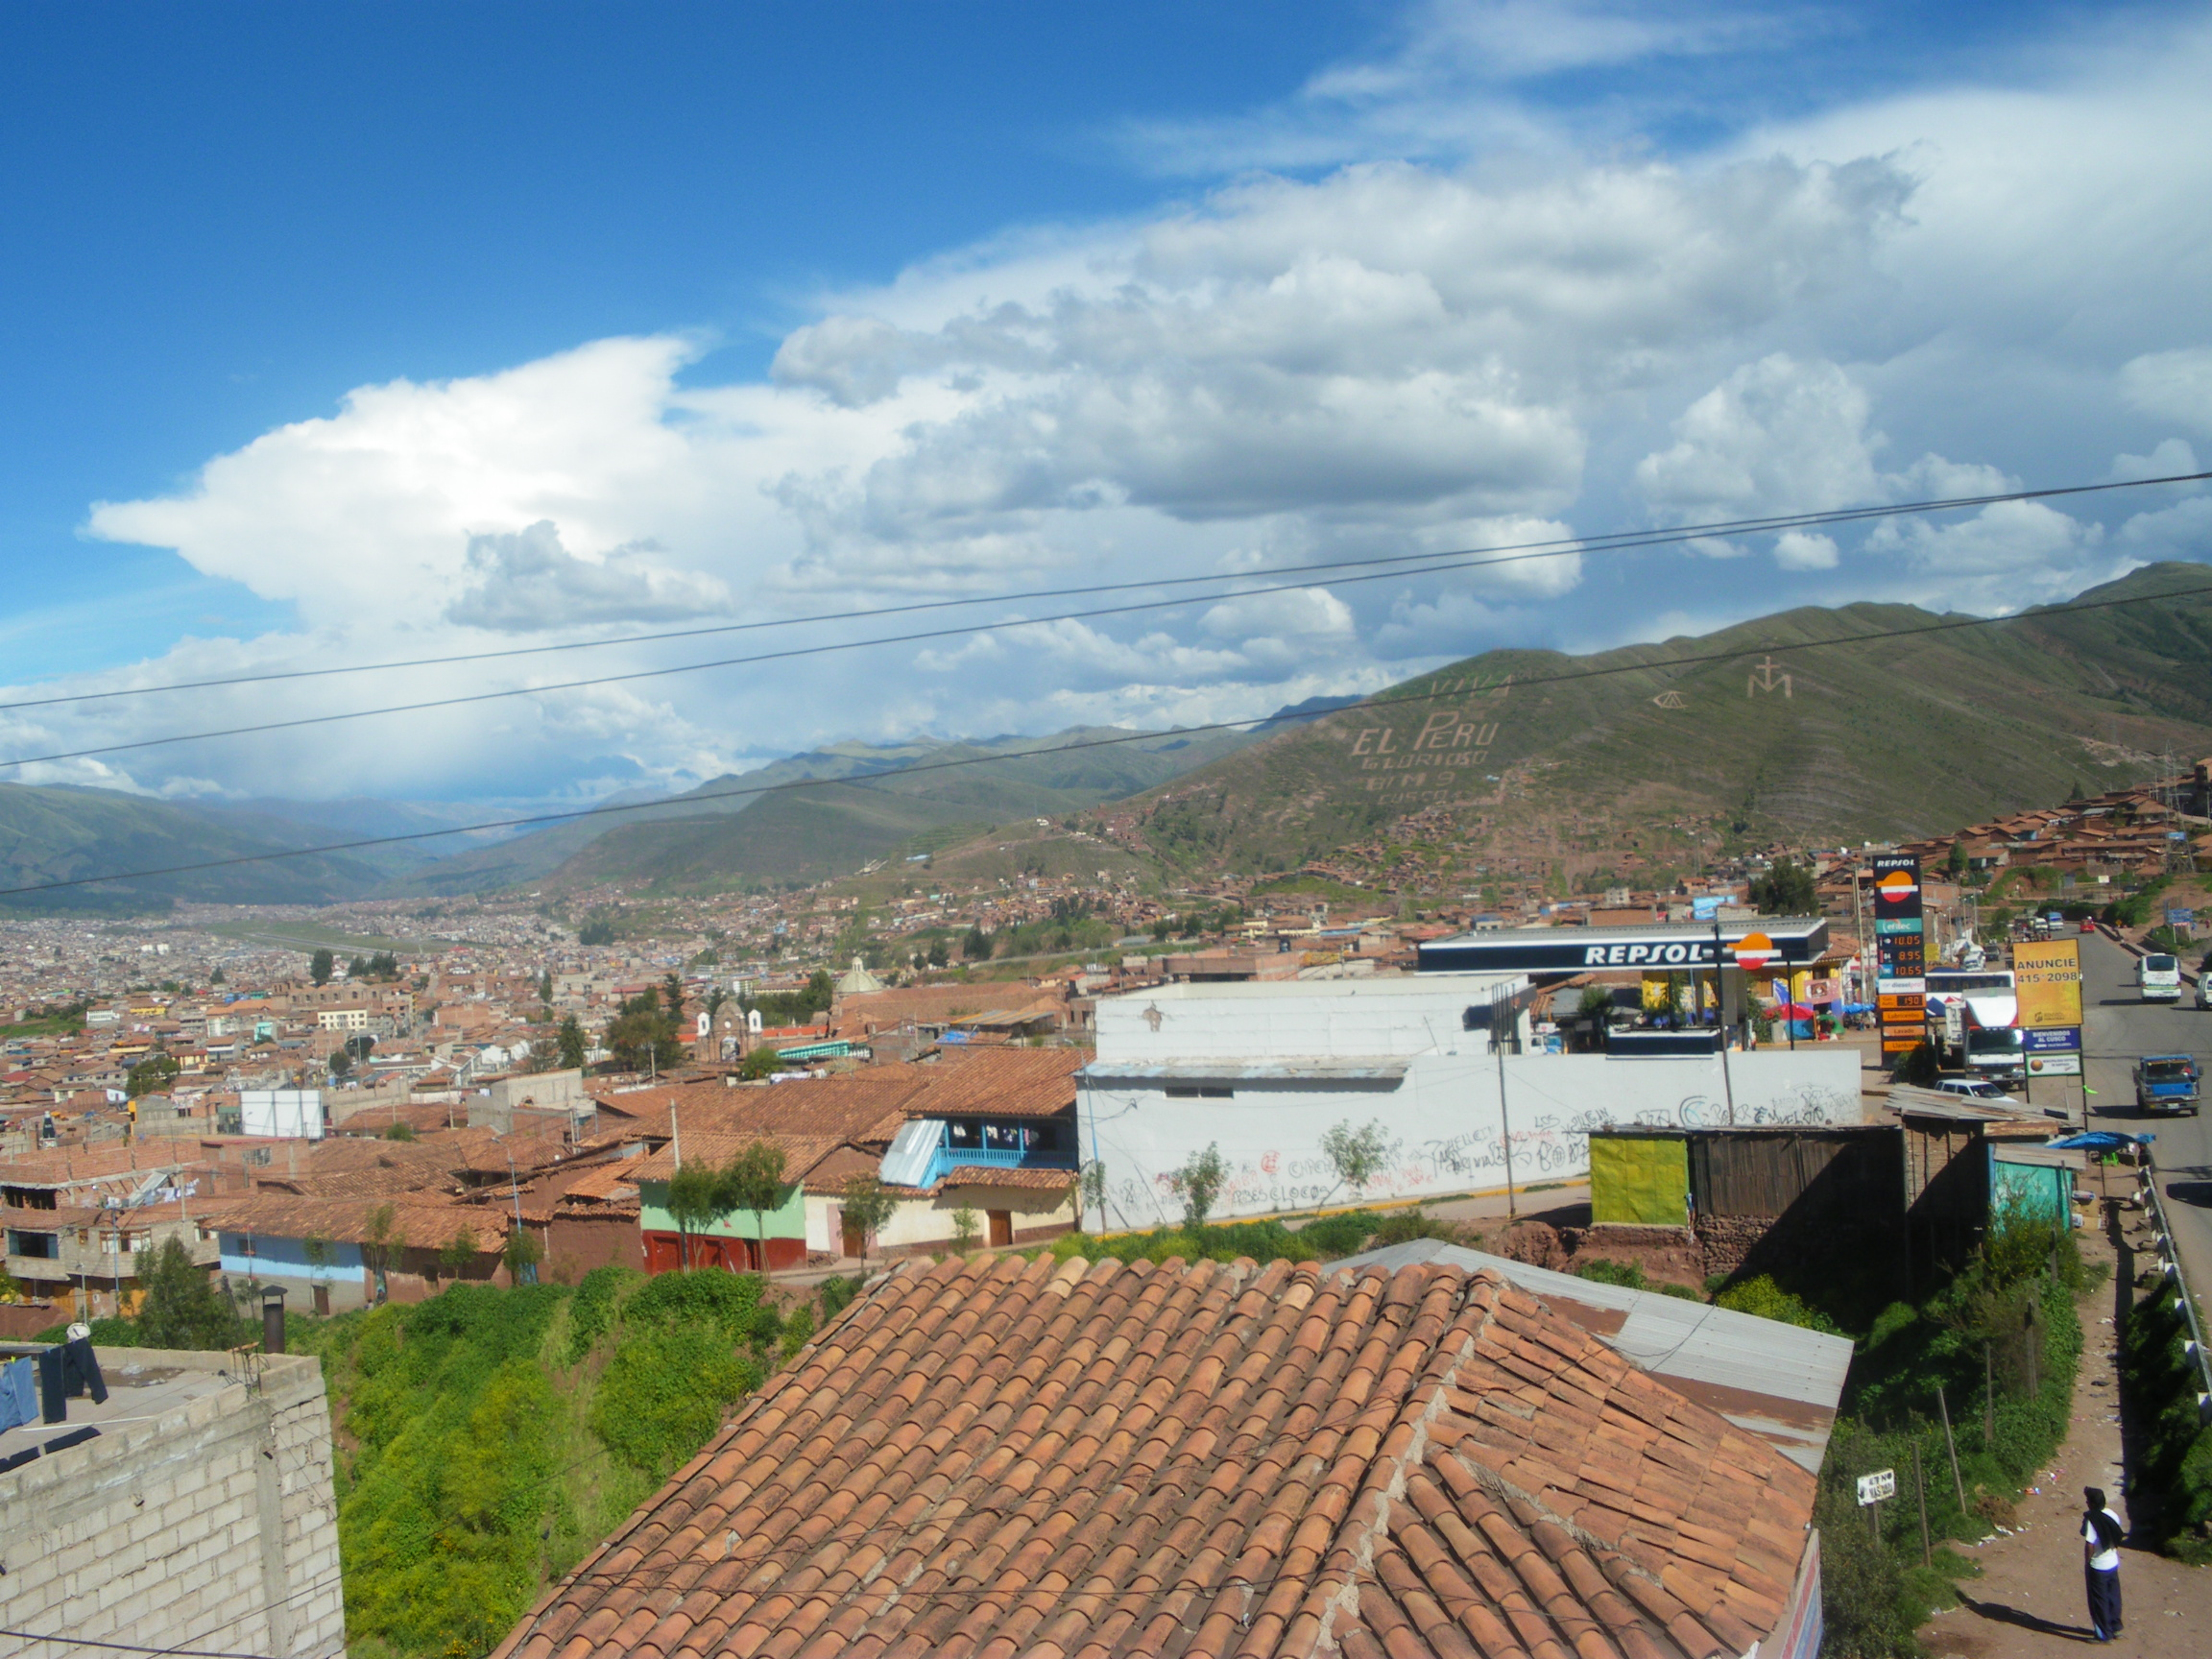 Look way in the background for the Viva El Peru.  This is one of the views we had along the way to our new mountain peak.